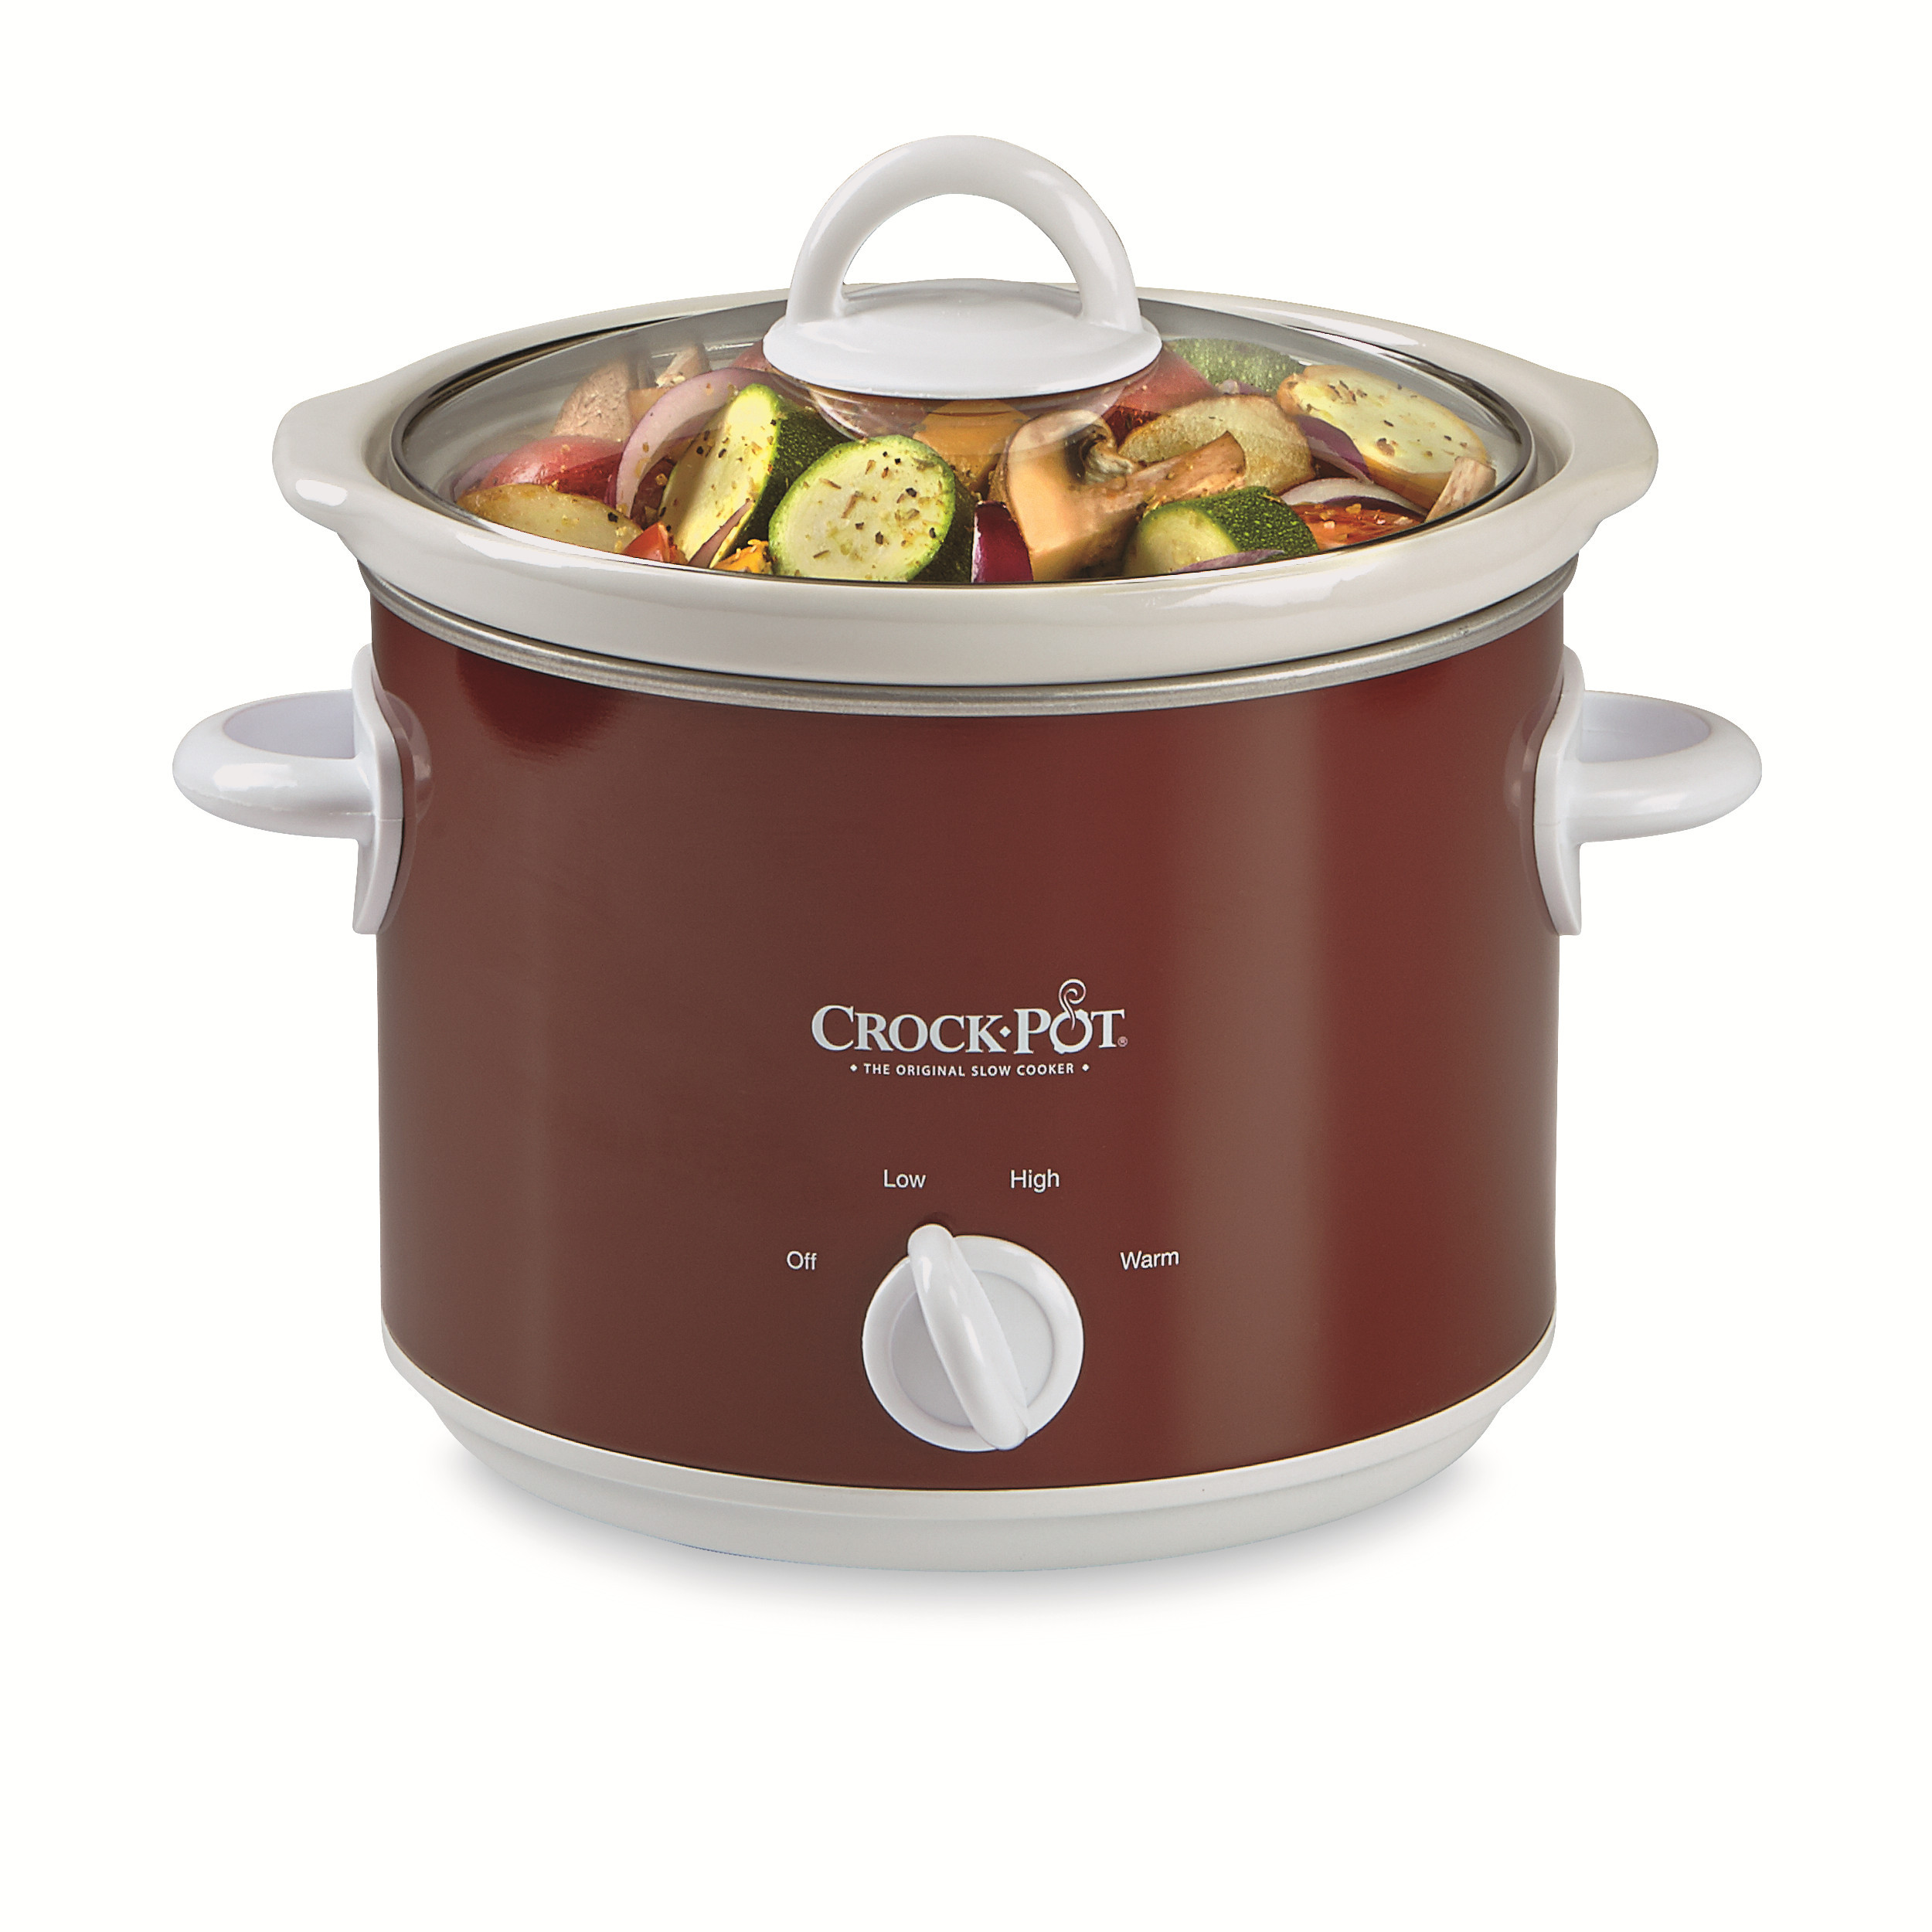 Crock-pot 3 Qt. Manual Slow Cooker  Red